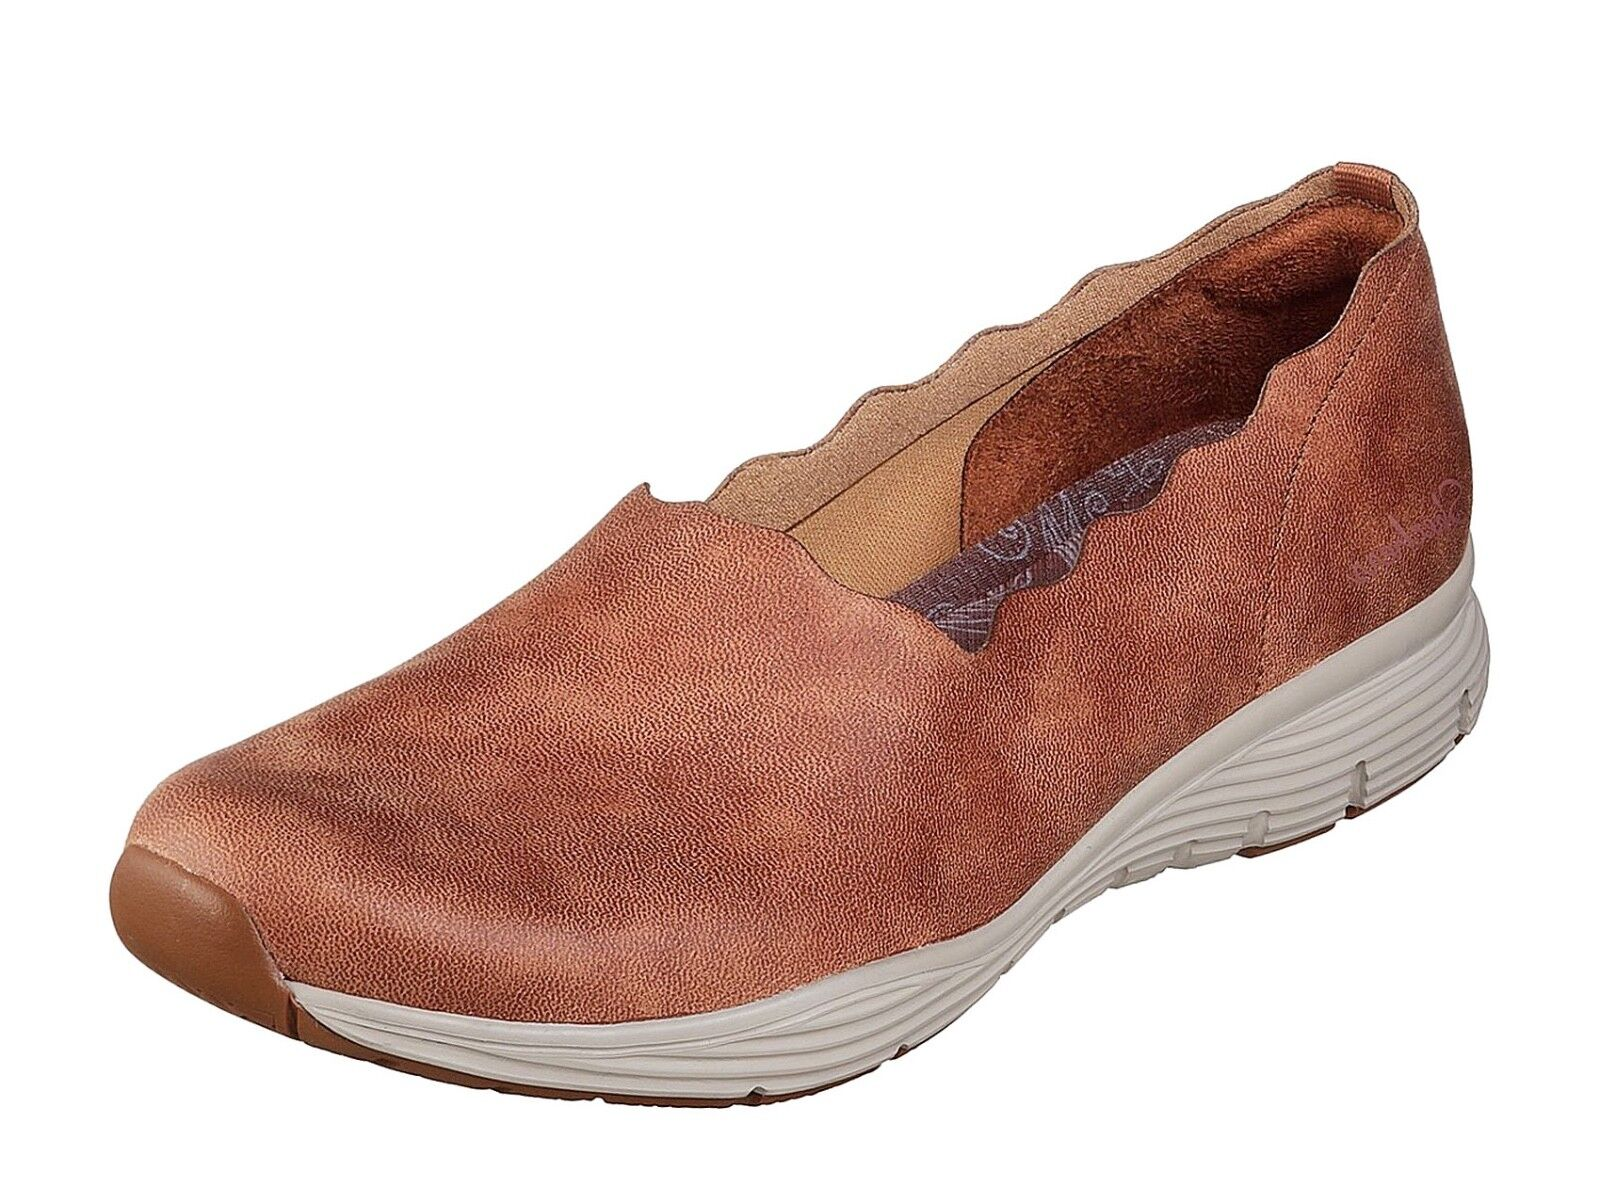 Skechers NEW Seager Triple Ripple Chestnut tan memory foam comfort shoes size3-8